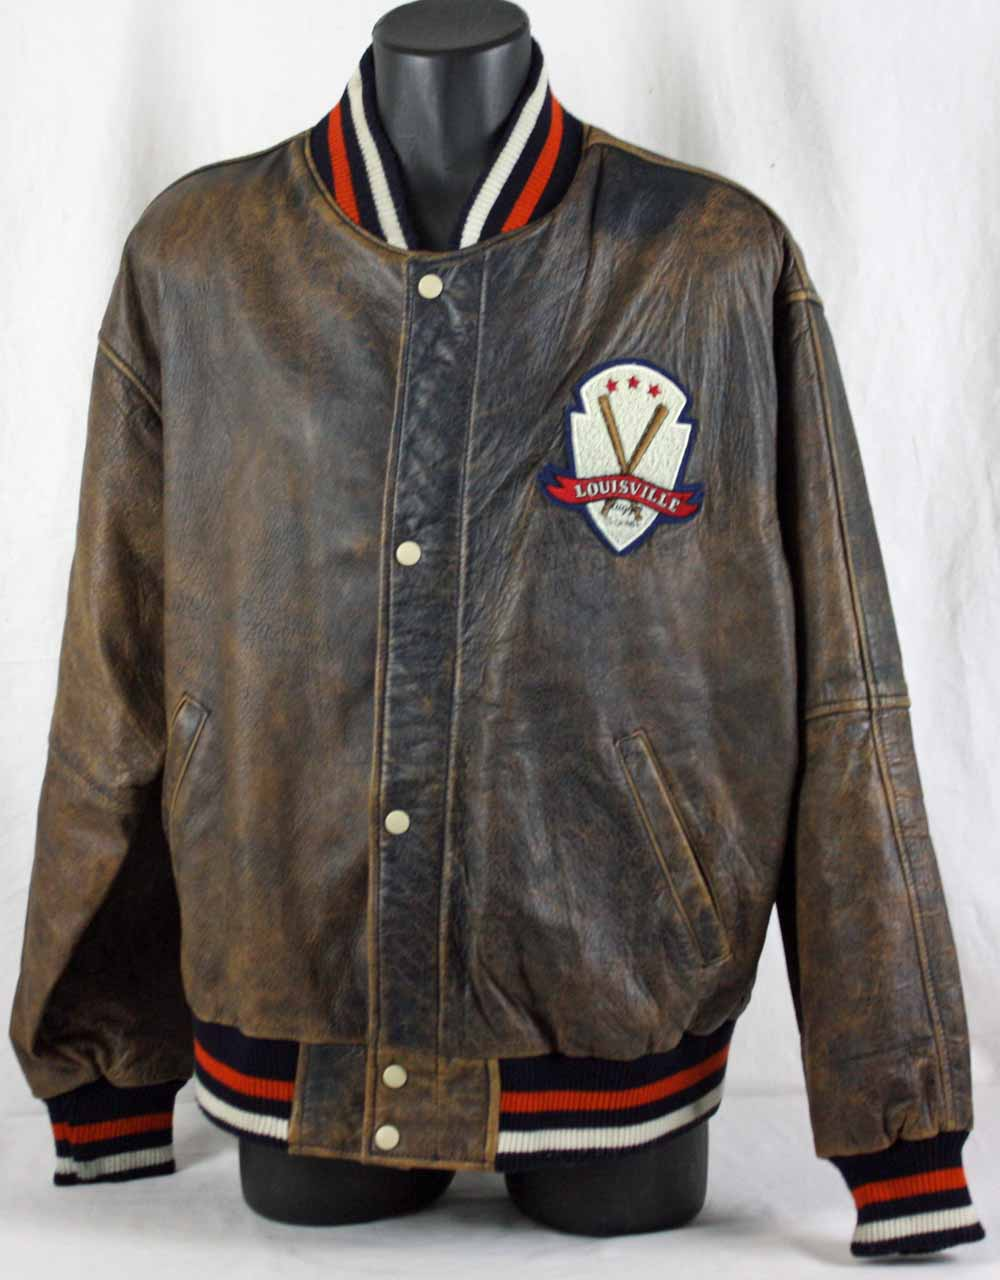 Tony Gwynn Personally Owned & Worn Louisville Slugger Leather Jacket